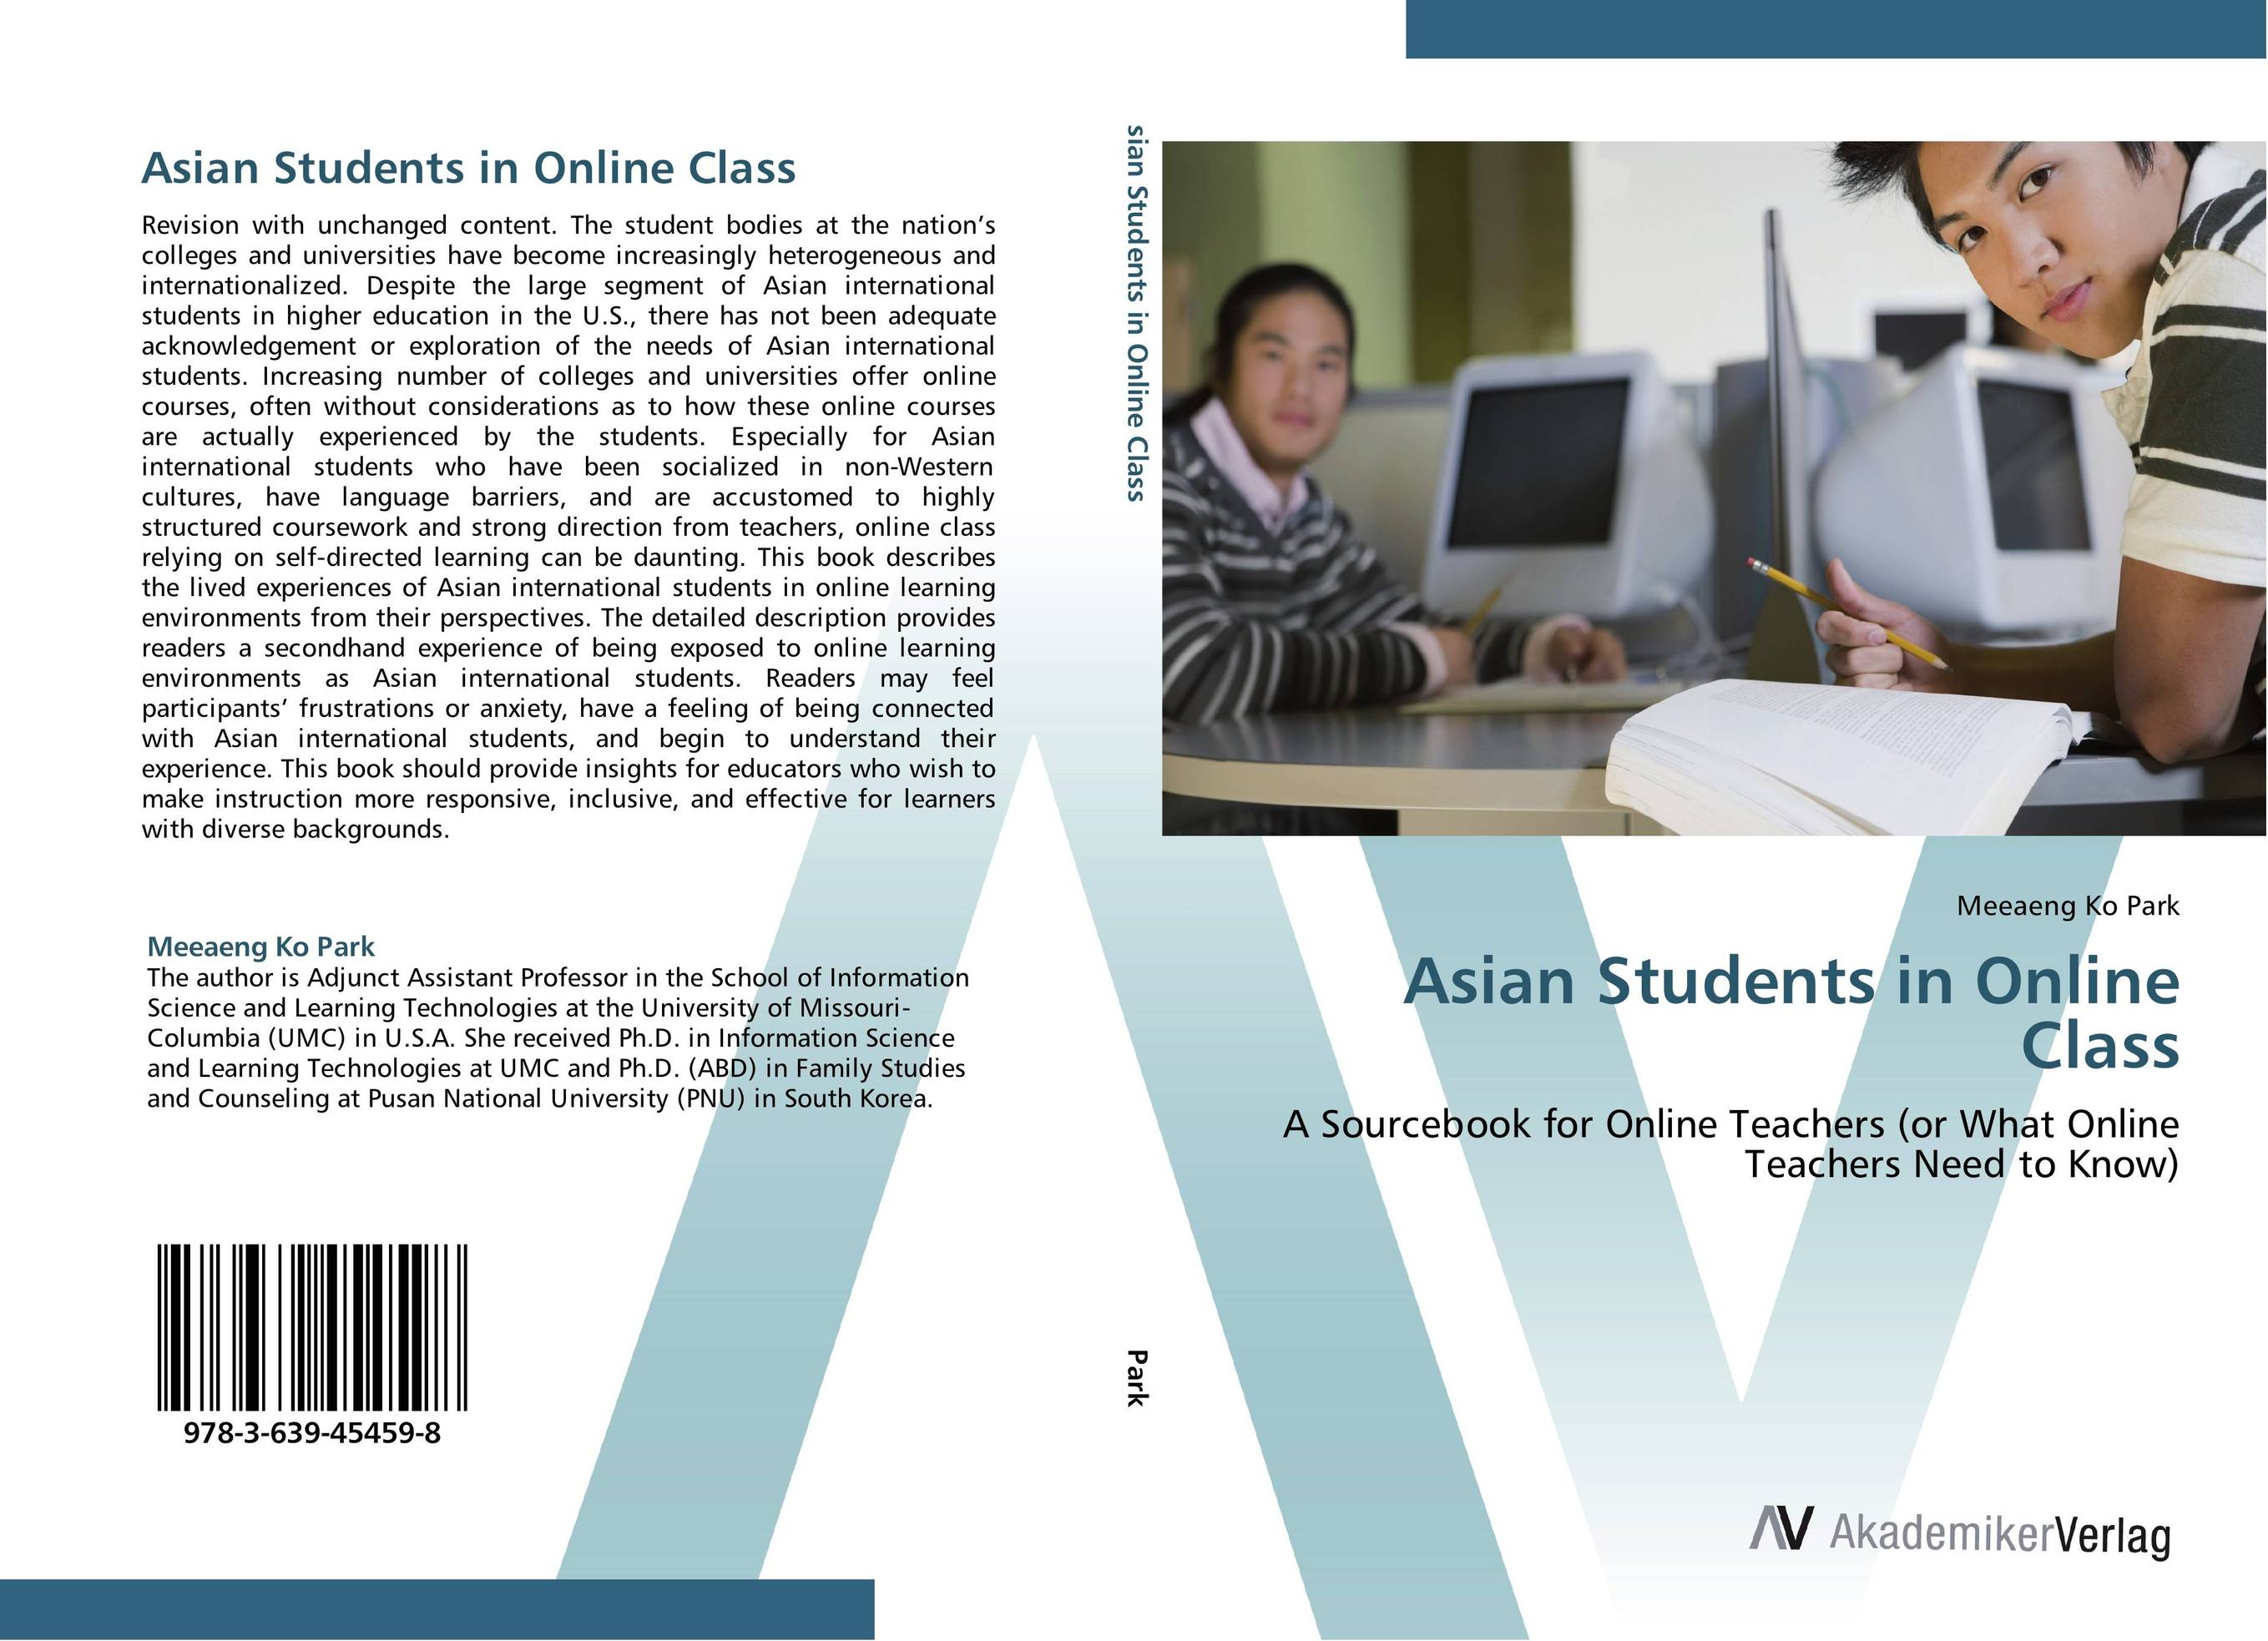 Asian Students in Online Class the teeth with root canal students to practice root canal preparation and filling actually